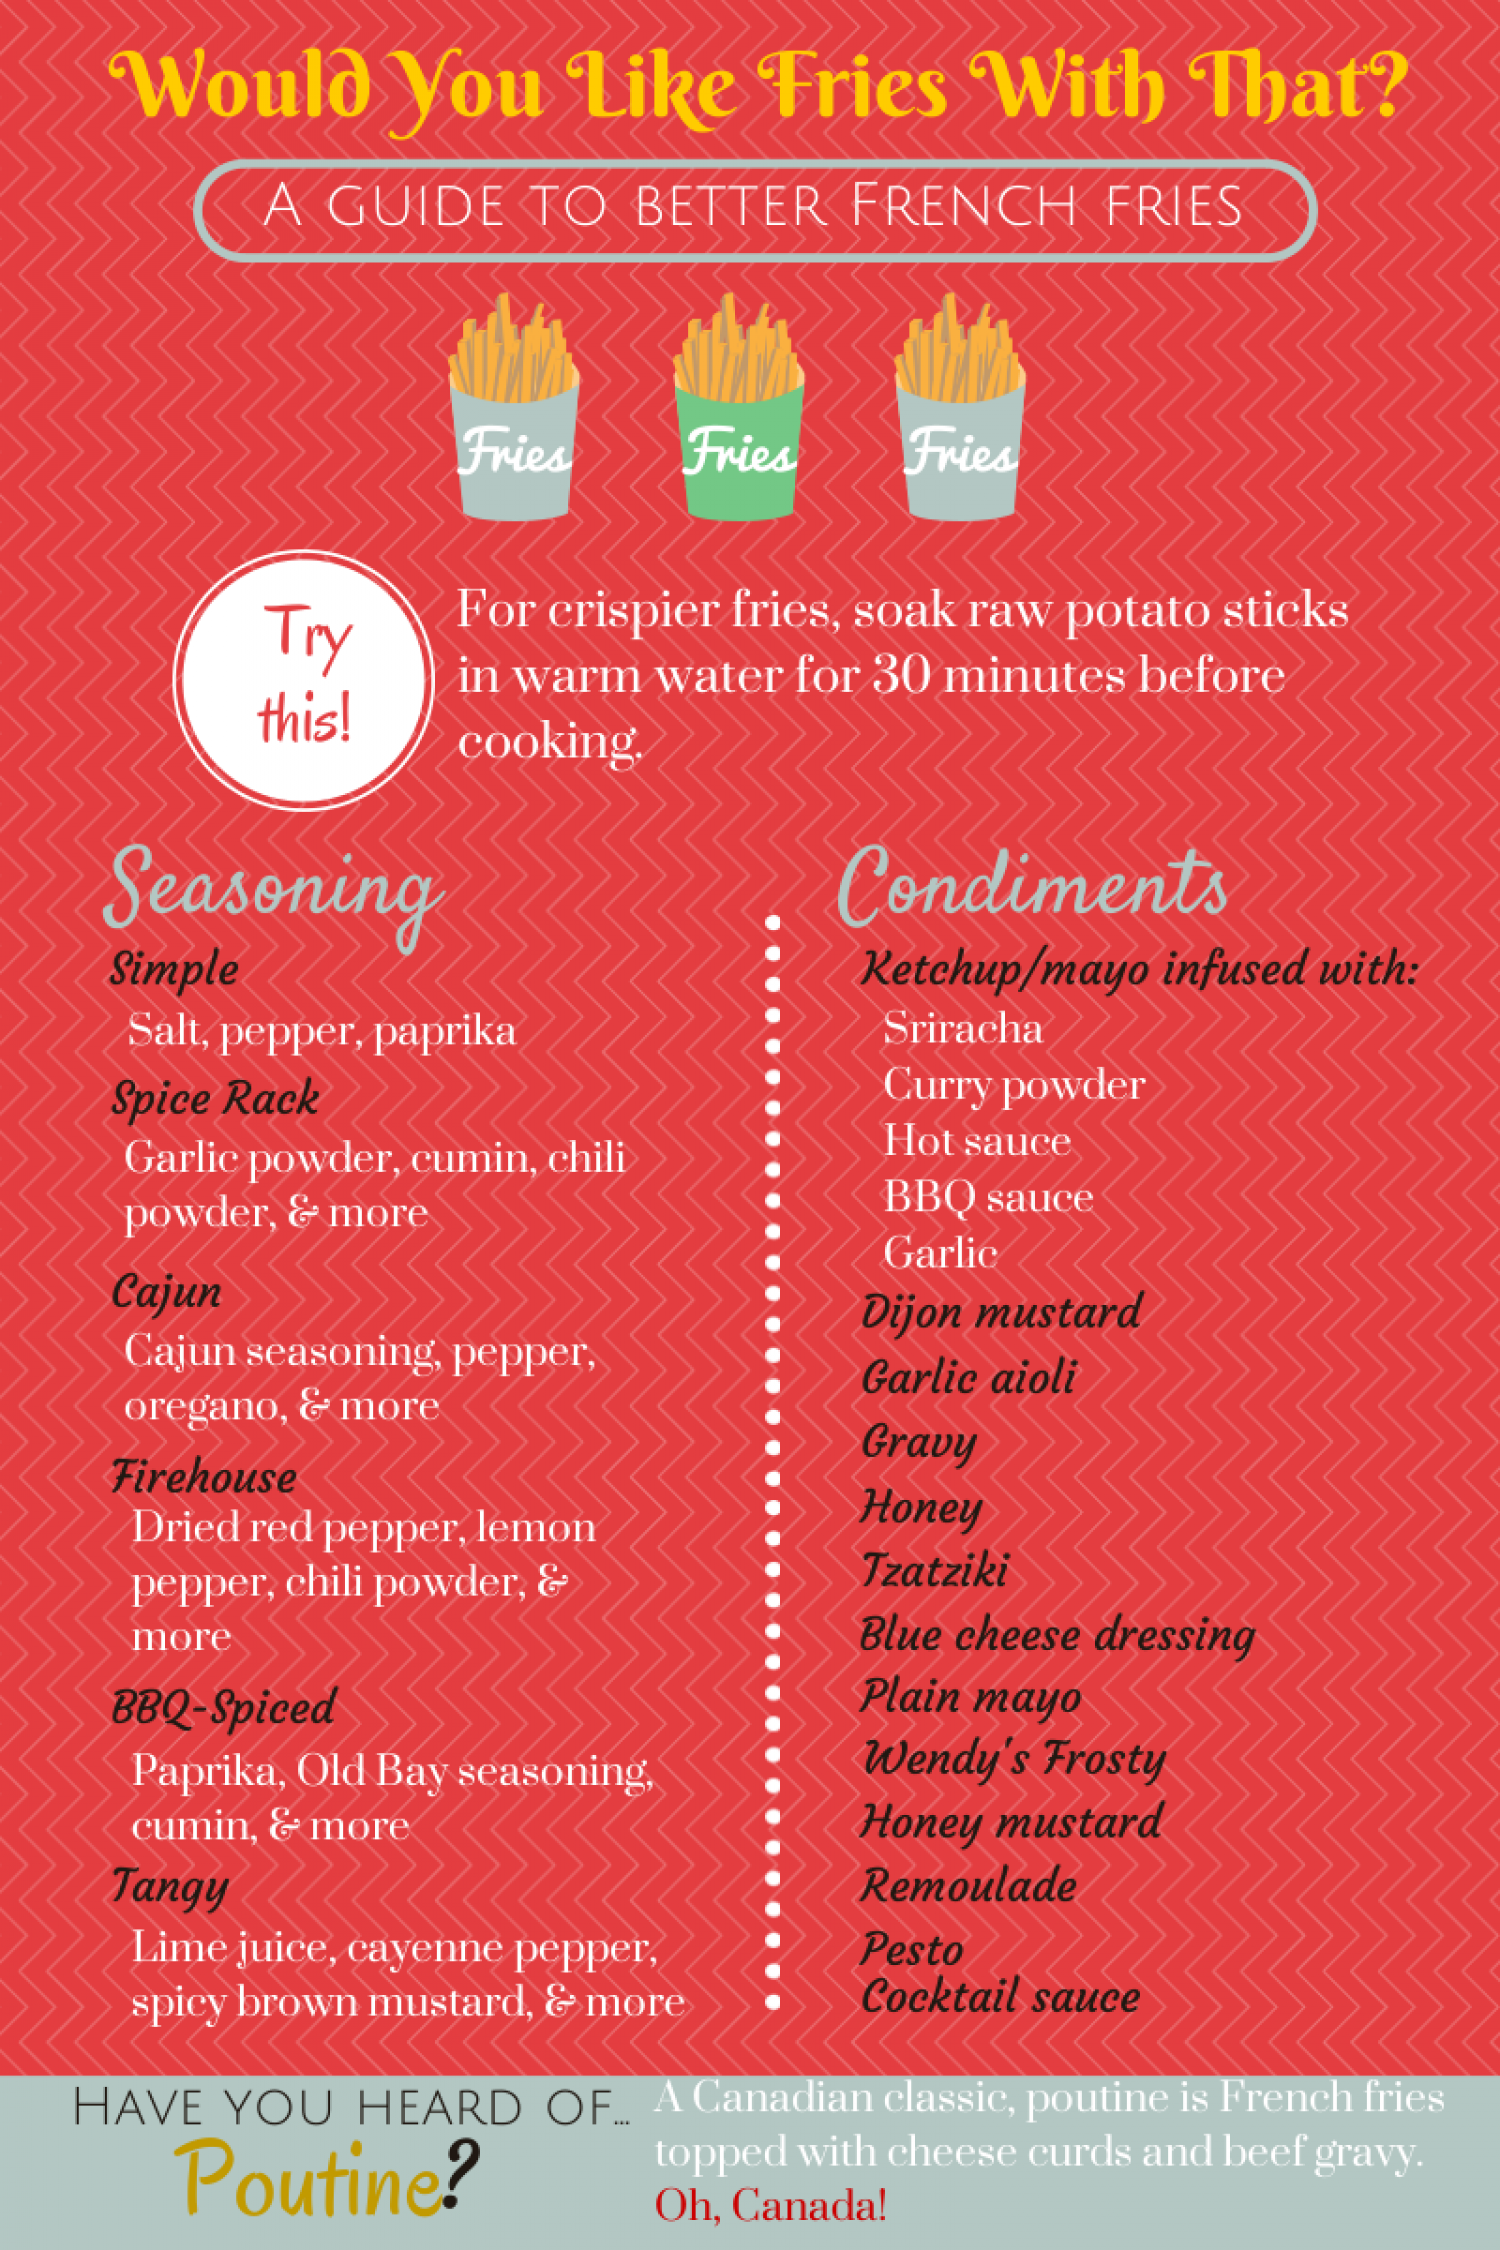 Would you like fries with that? A guide to better French fries Infographic